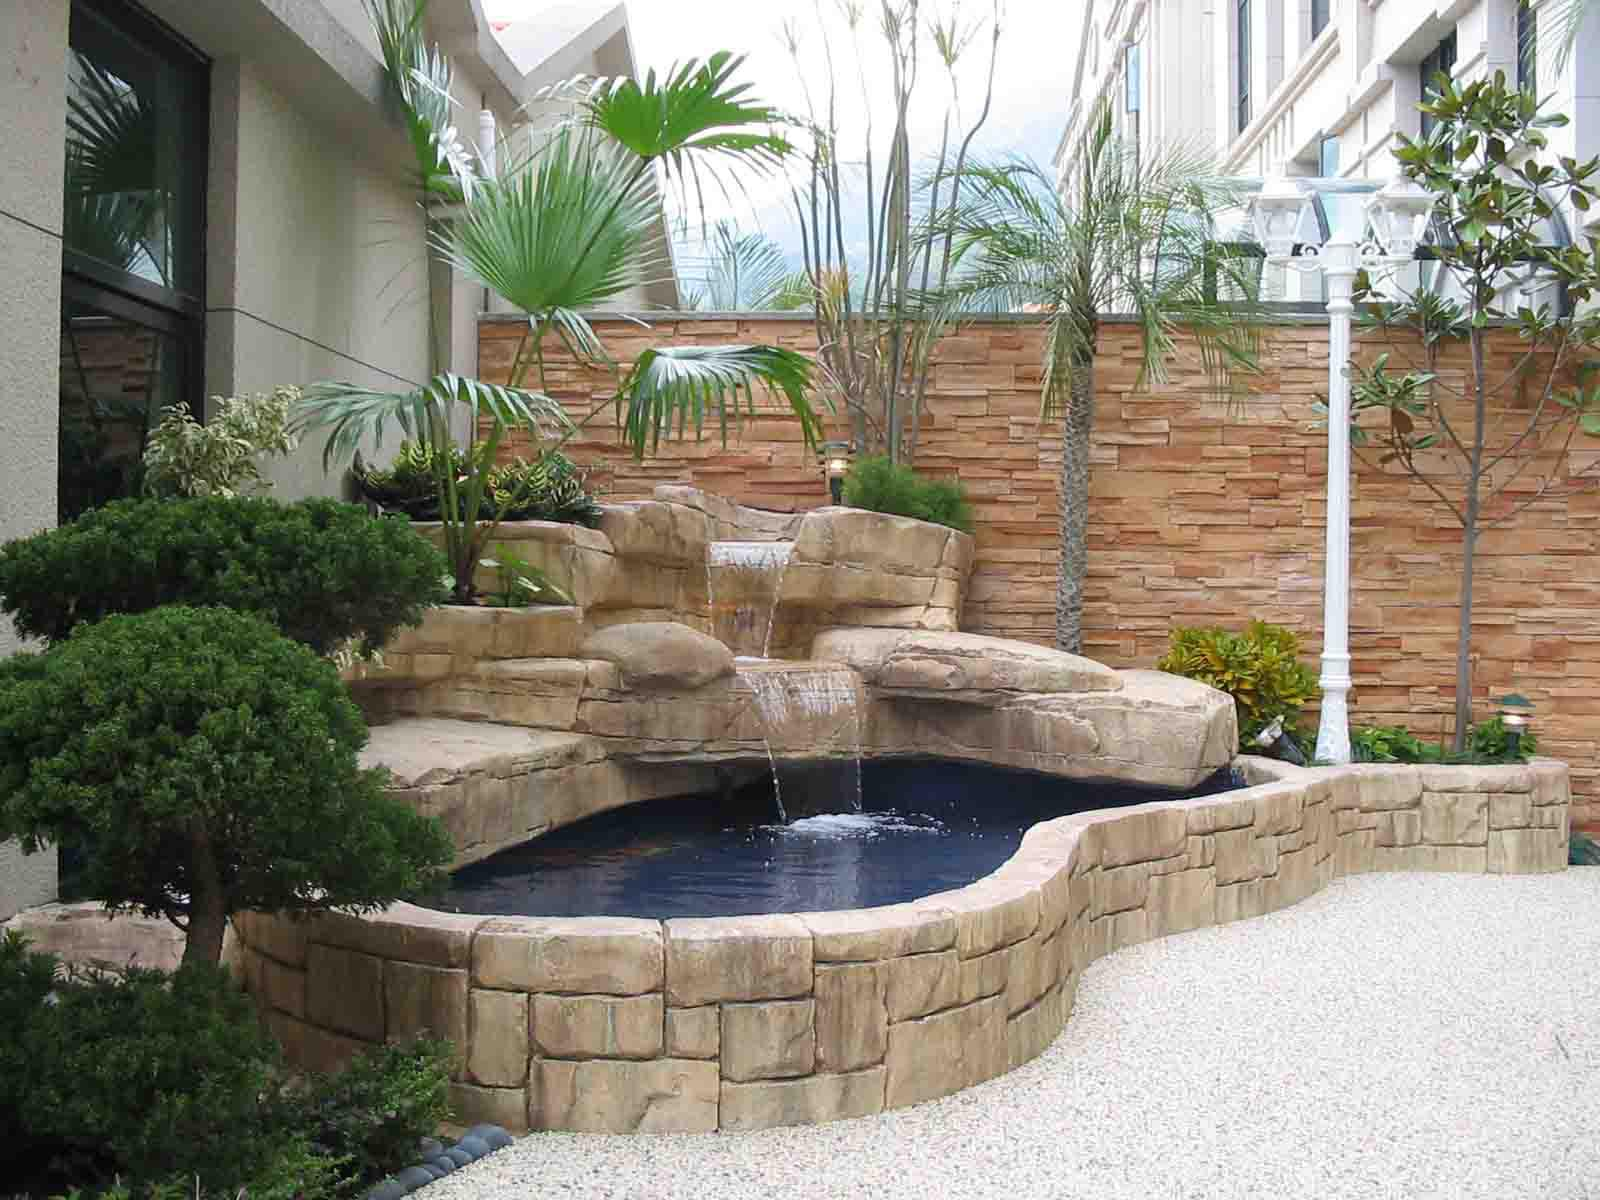 Fish pond garden design backyard design ideas for Fish for small outdoor pond